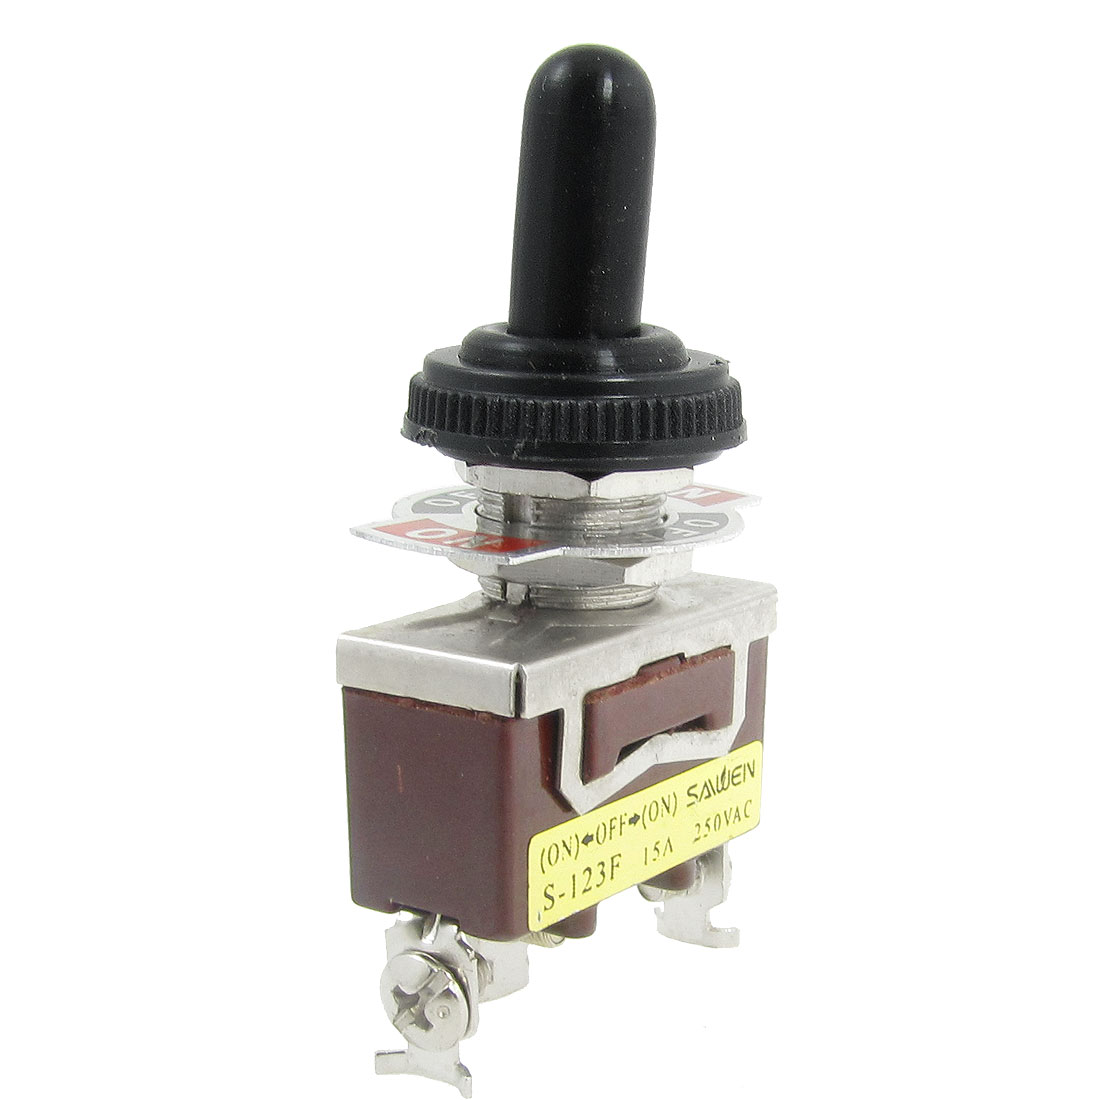 AC 250V 15A ON/OFF/ON 3 Way Momentary SPDT Toggle Switch w Waterproof Boot